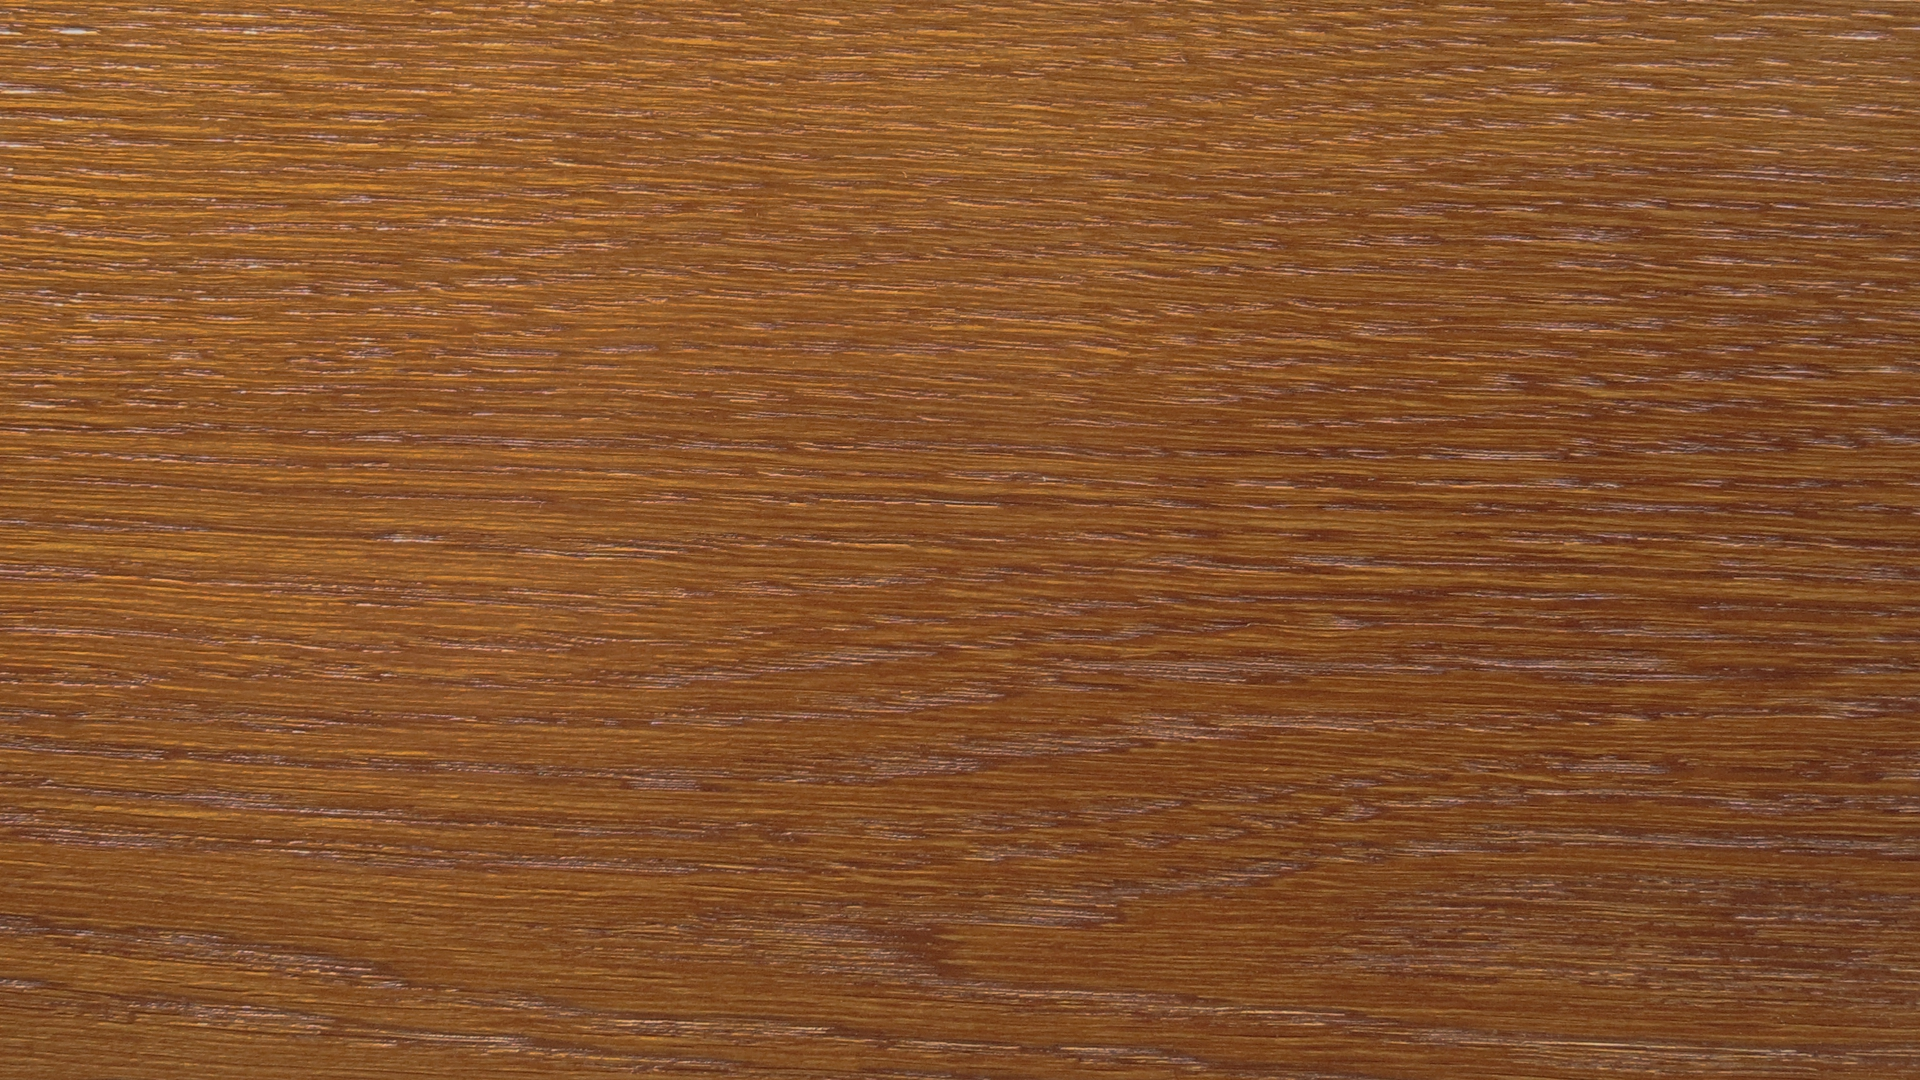 colorwood 03_57b733accb92b